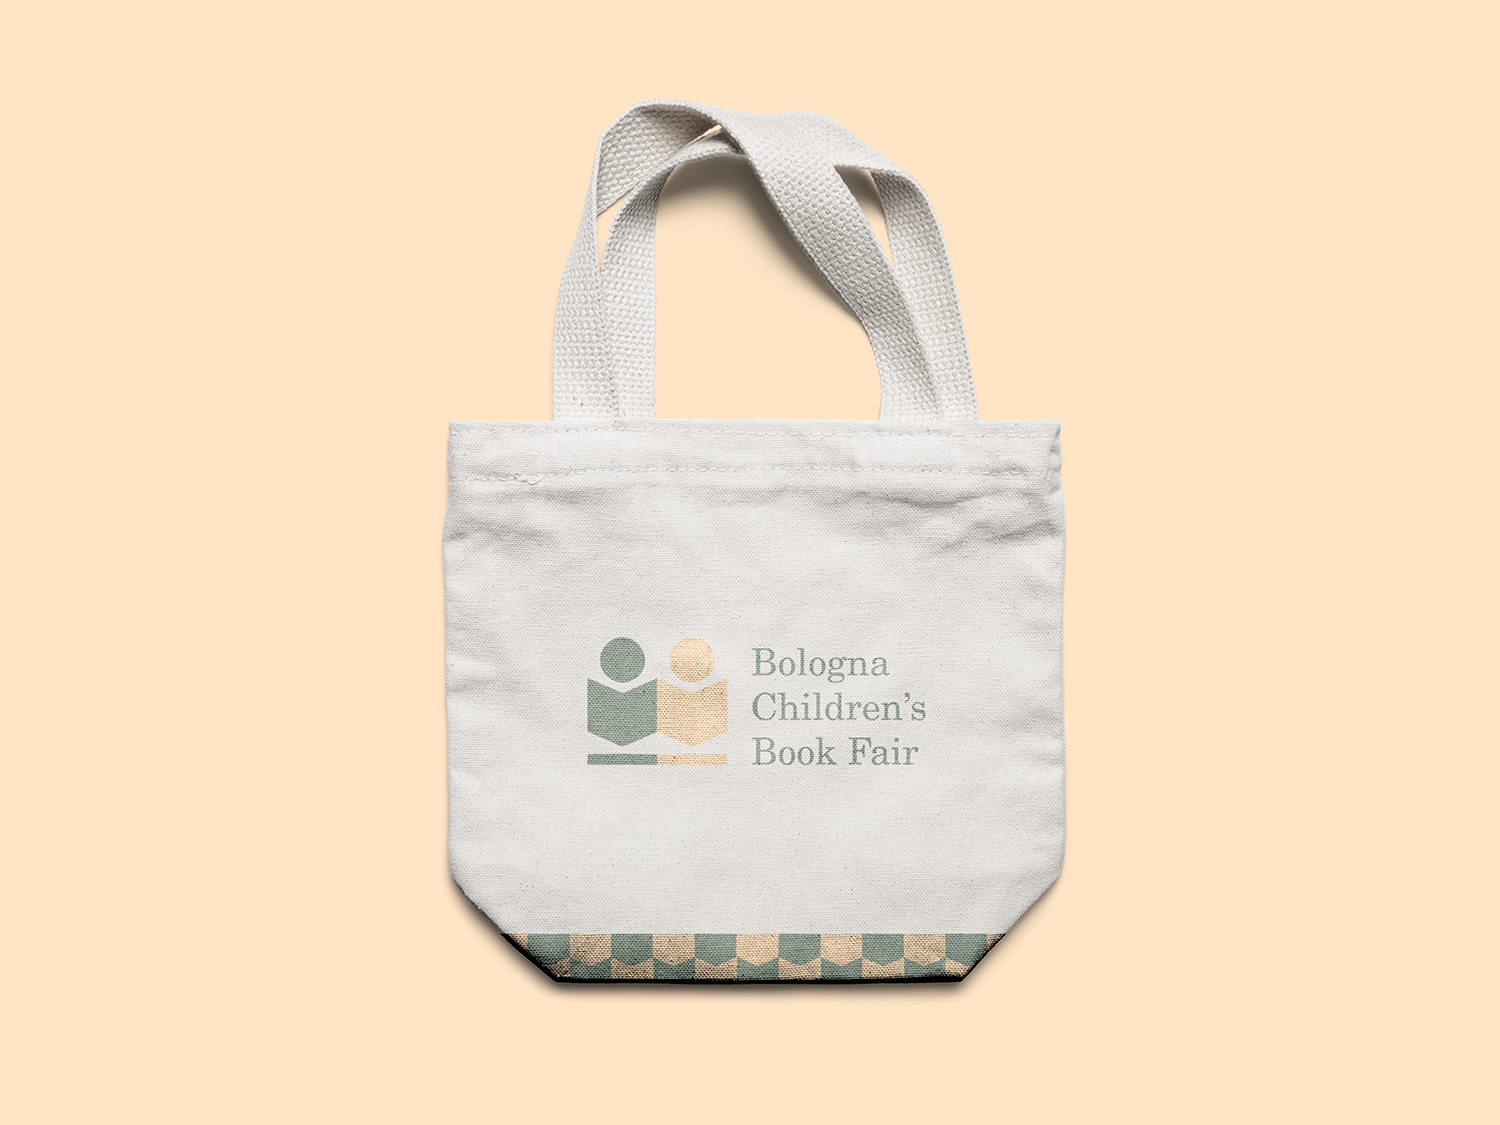 Tote bags will be an assisting element to carry some of the previous brand items listed.